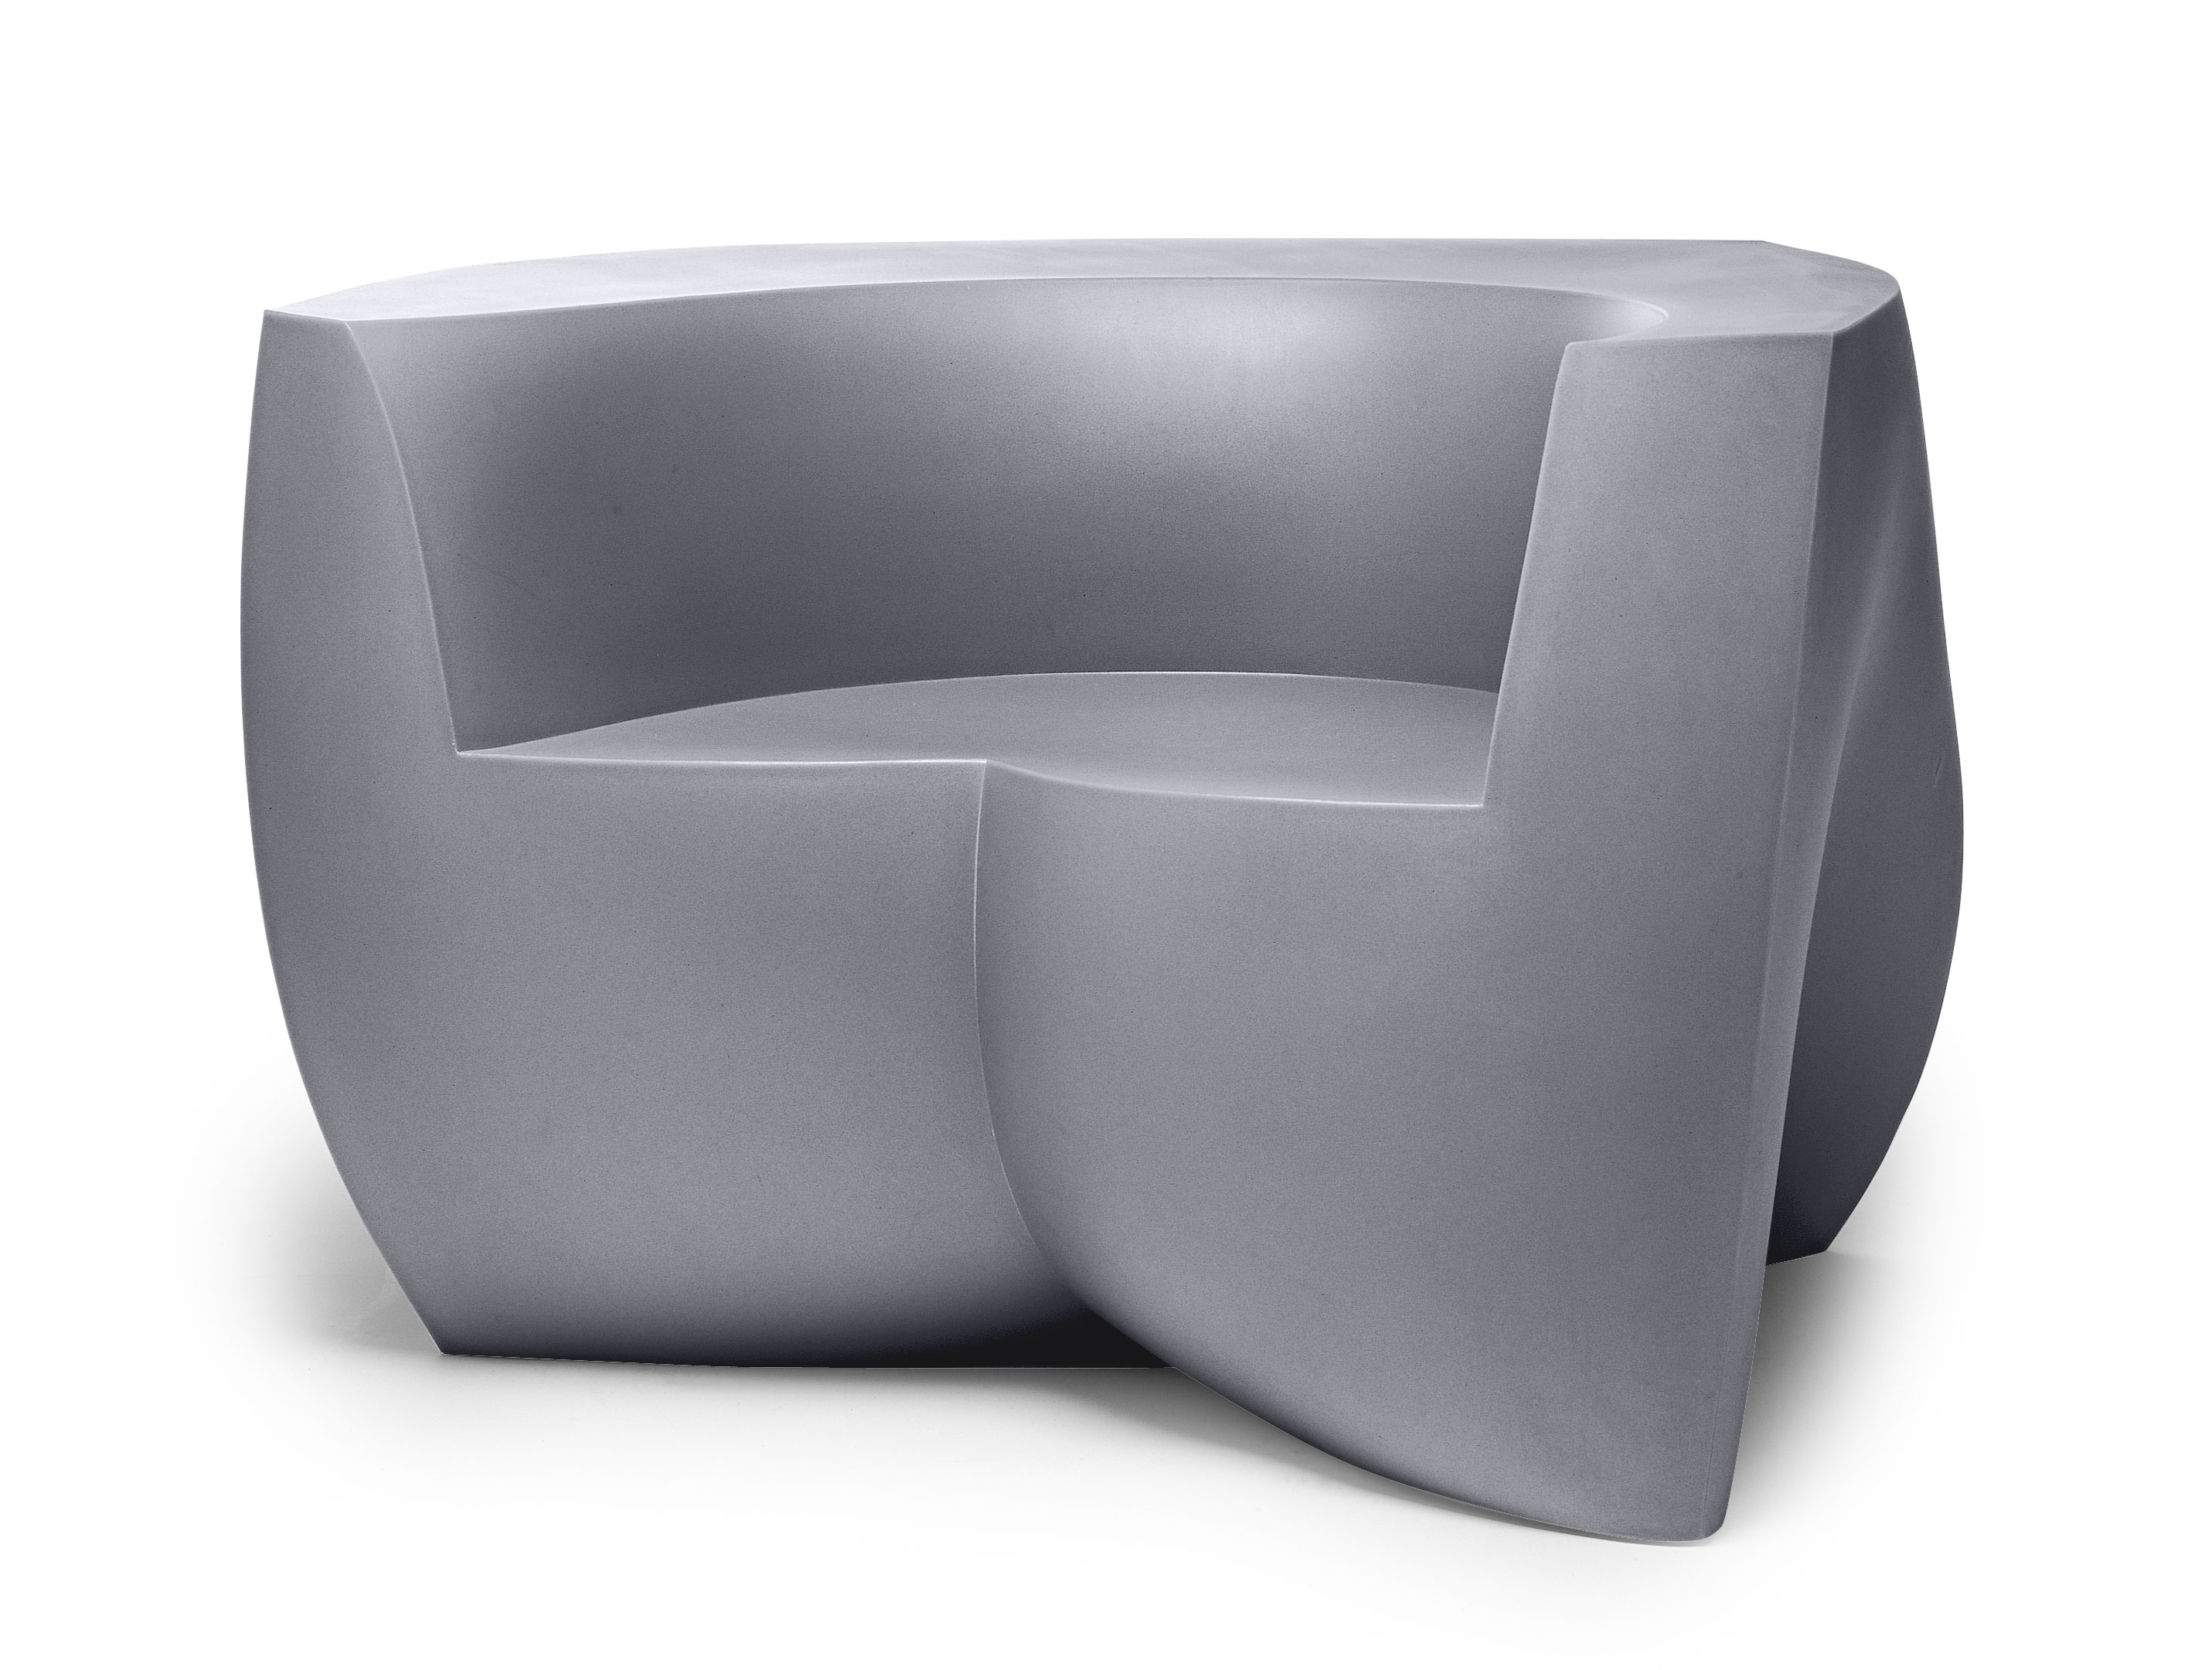 frank gehry chair canopy with footrest the ghery furniture collection arquidocs